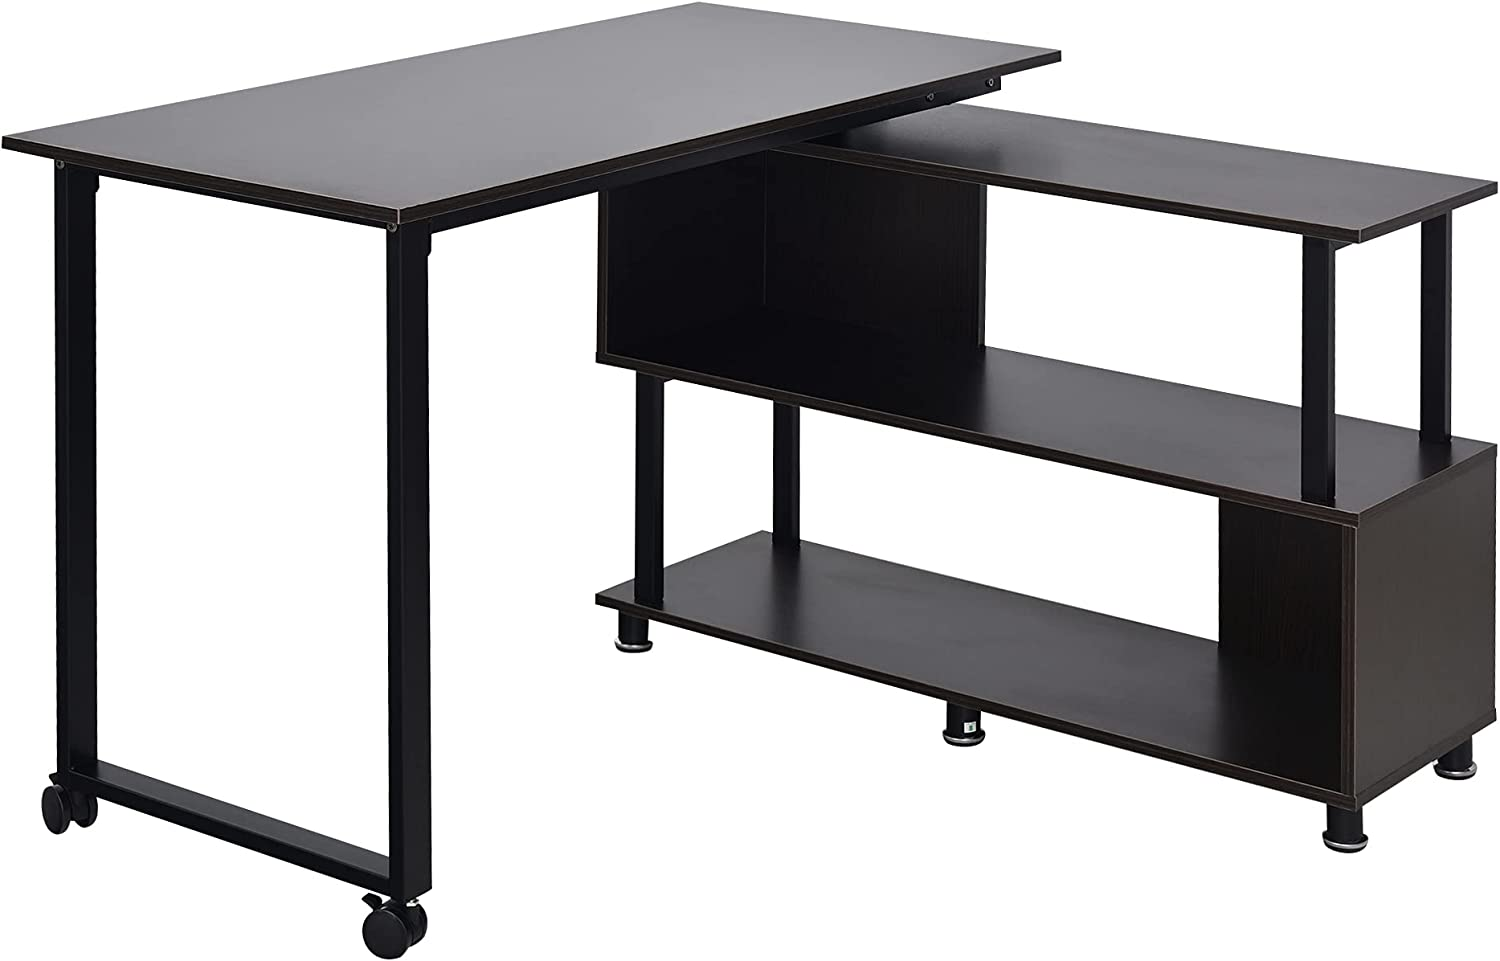 HOMCOM Mobile L-Shaped Rotating Computer Shelv Desk Storage with Louisville-Jefferson County Time sale Mall